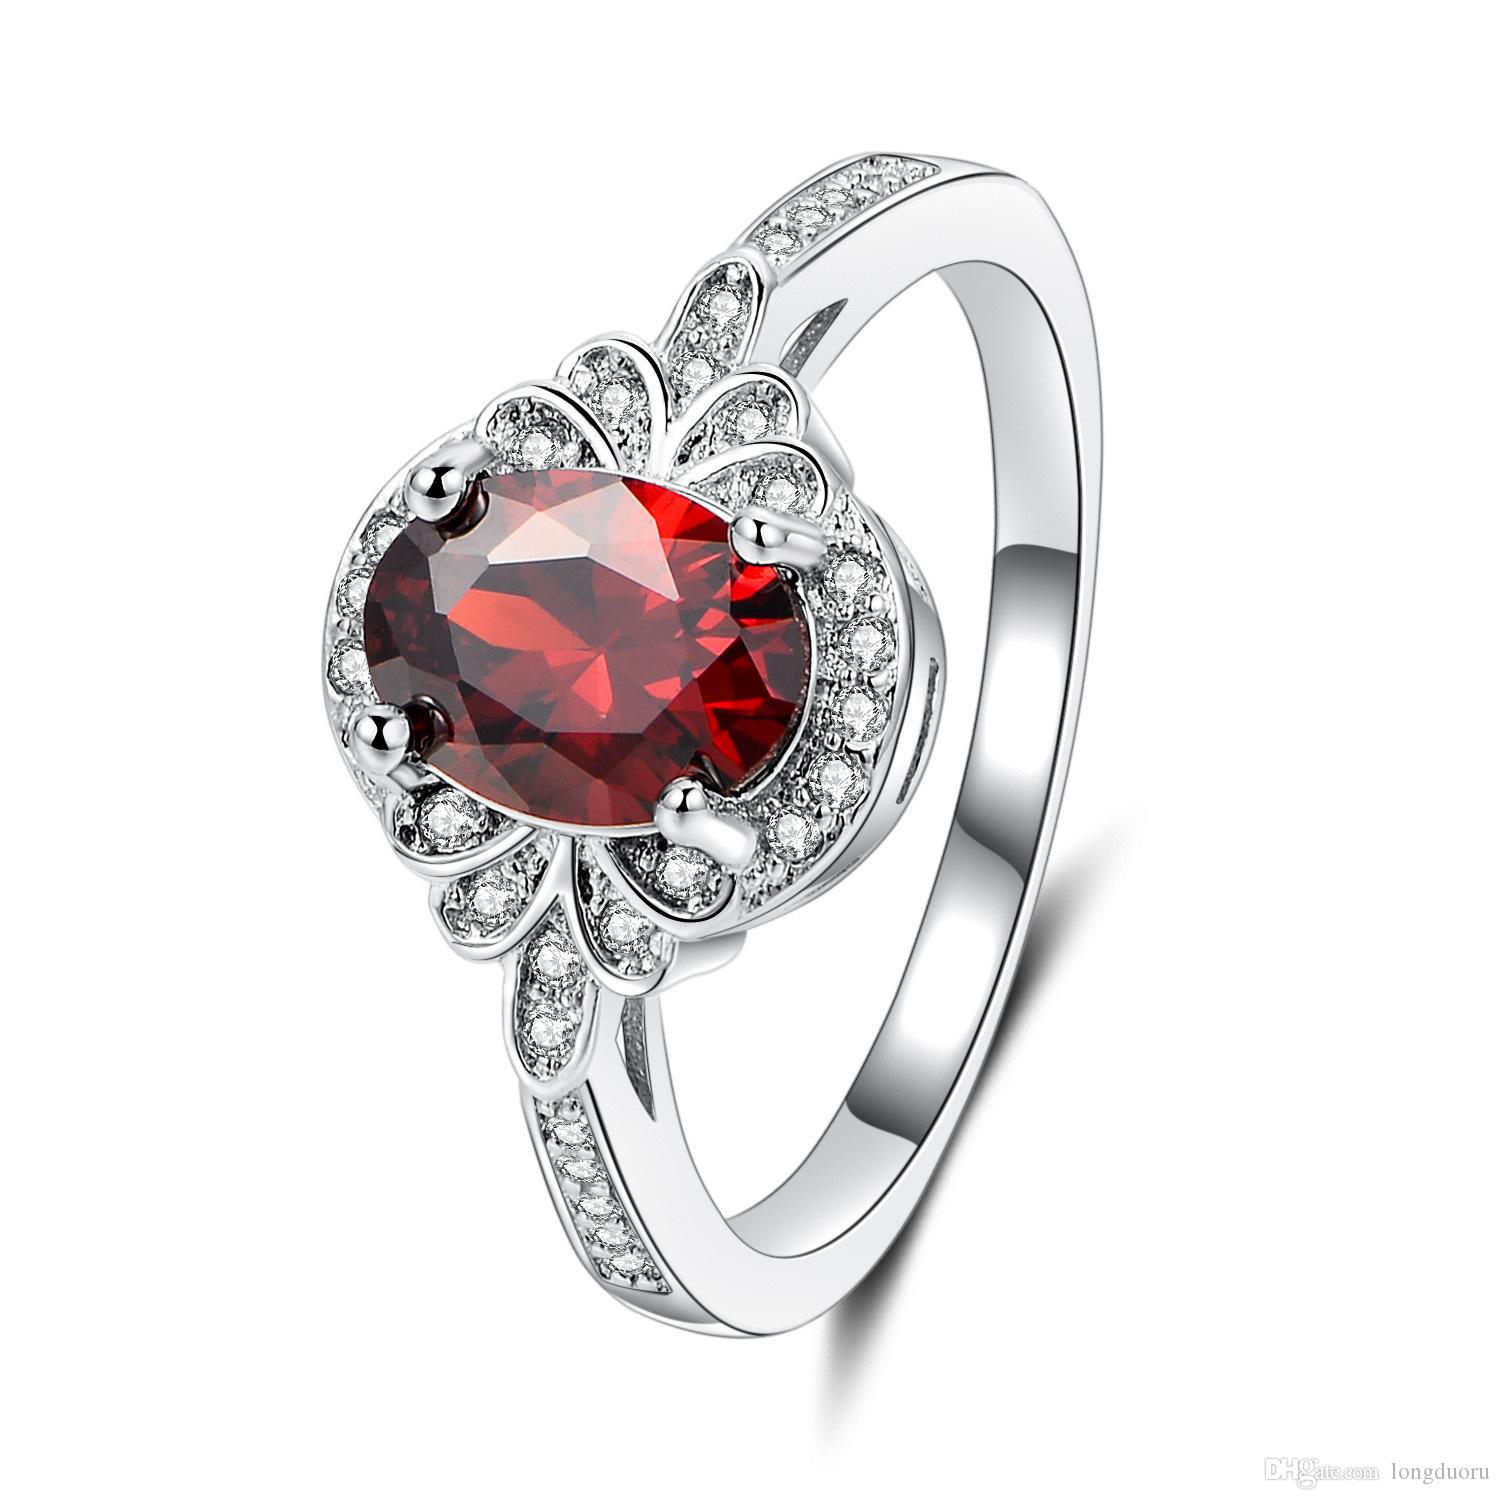 21941a9aedb1b 2018 new products European and American fashion foreign trade violence  style jewelry colored zircon - plated platinum ring JZ35